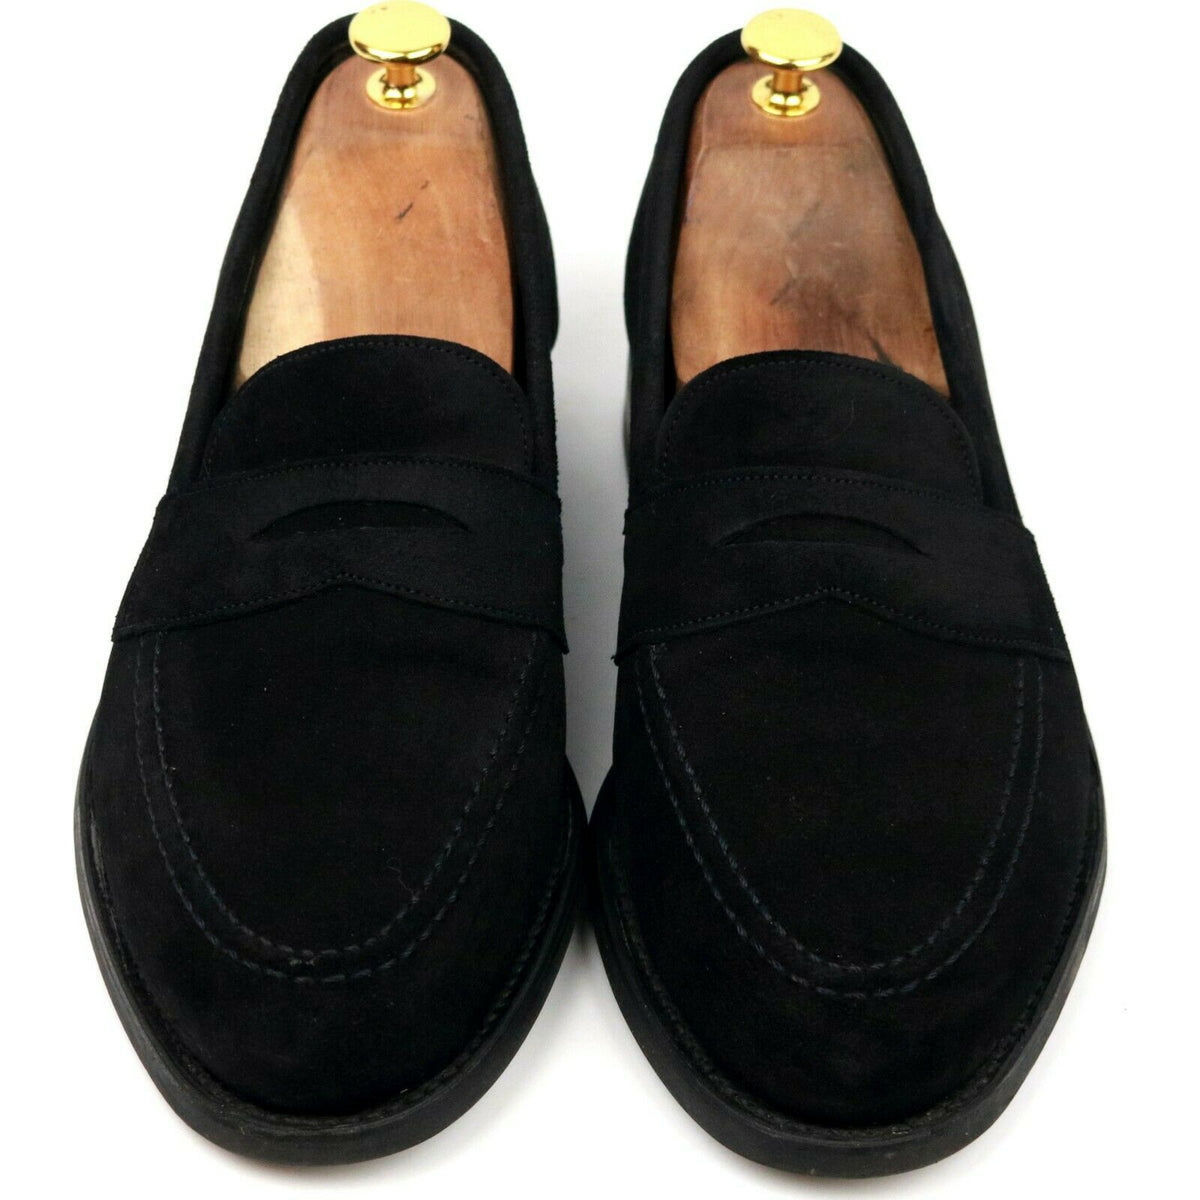 Cheaney 'Cannon' Black Suede Loafers UK 8 F